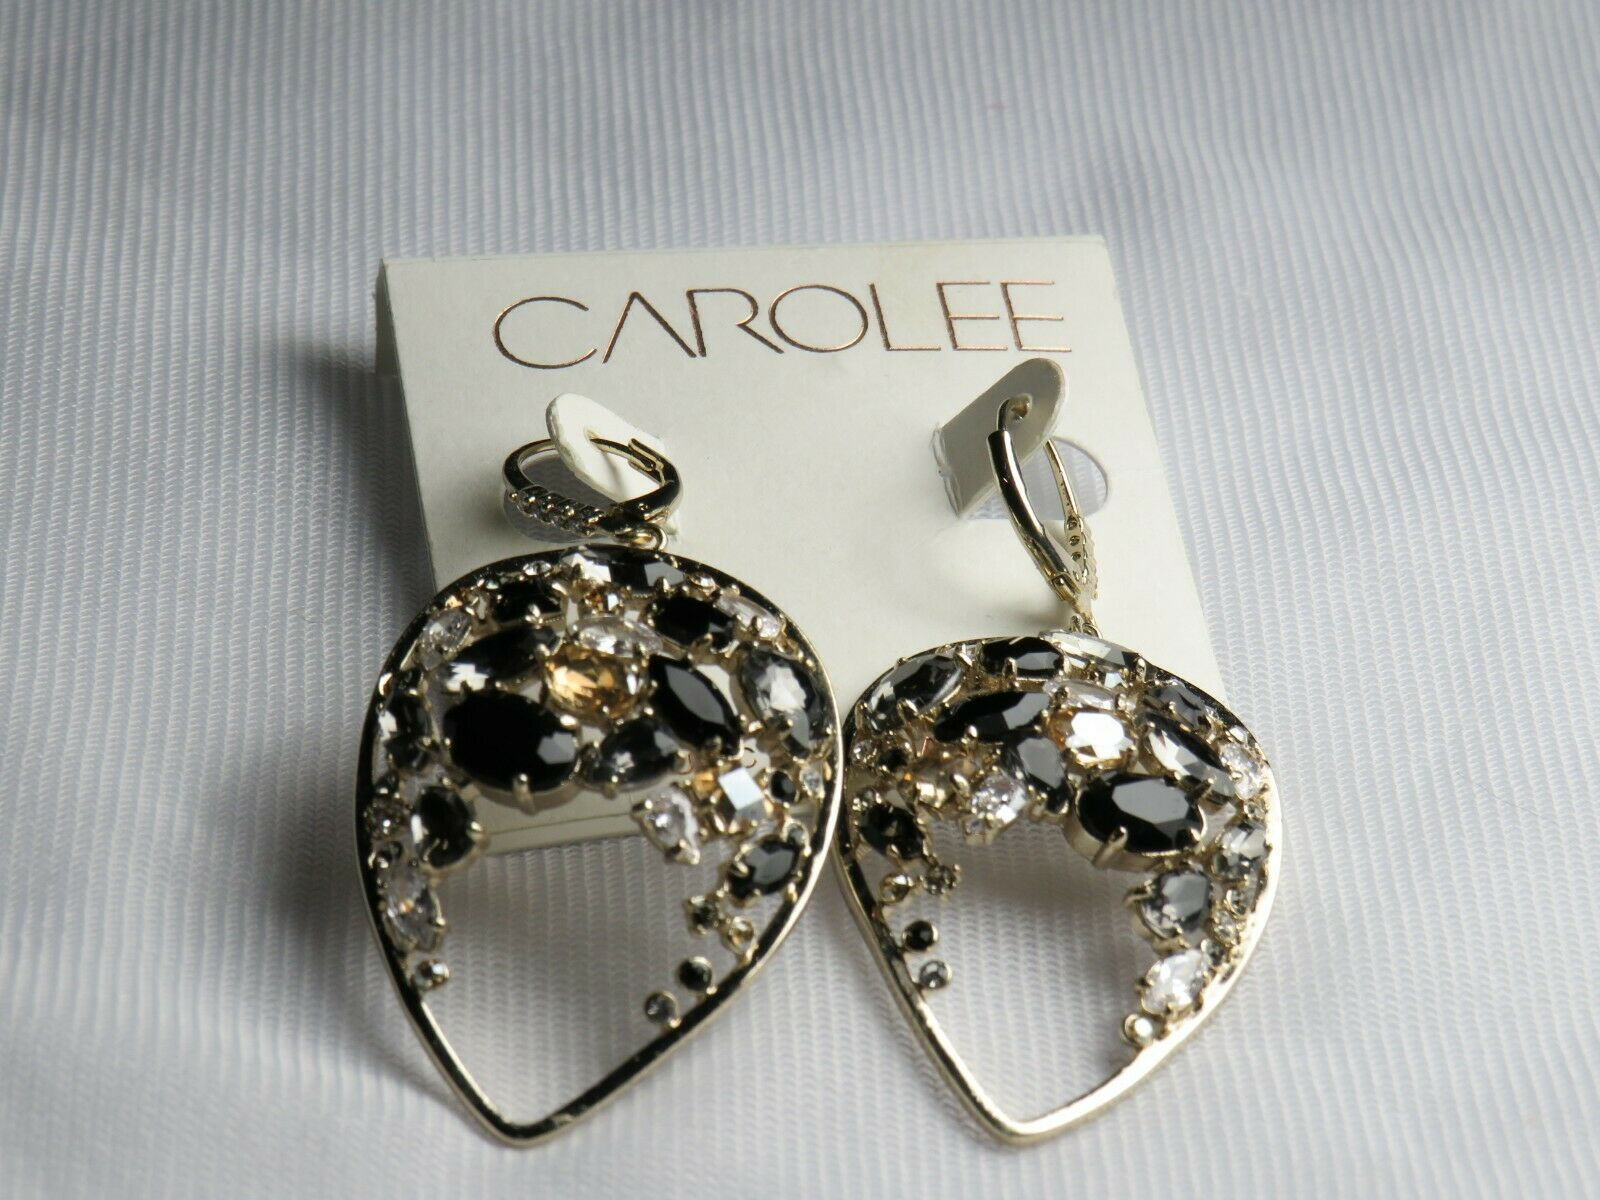 Primary image for Carolee Gold Tone Cubic Zirconia Drop Dangle Earrings - New